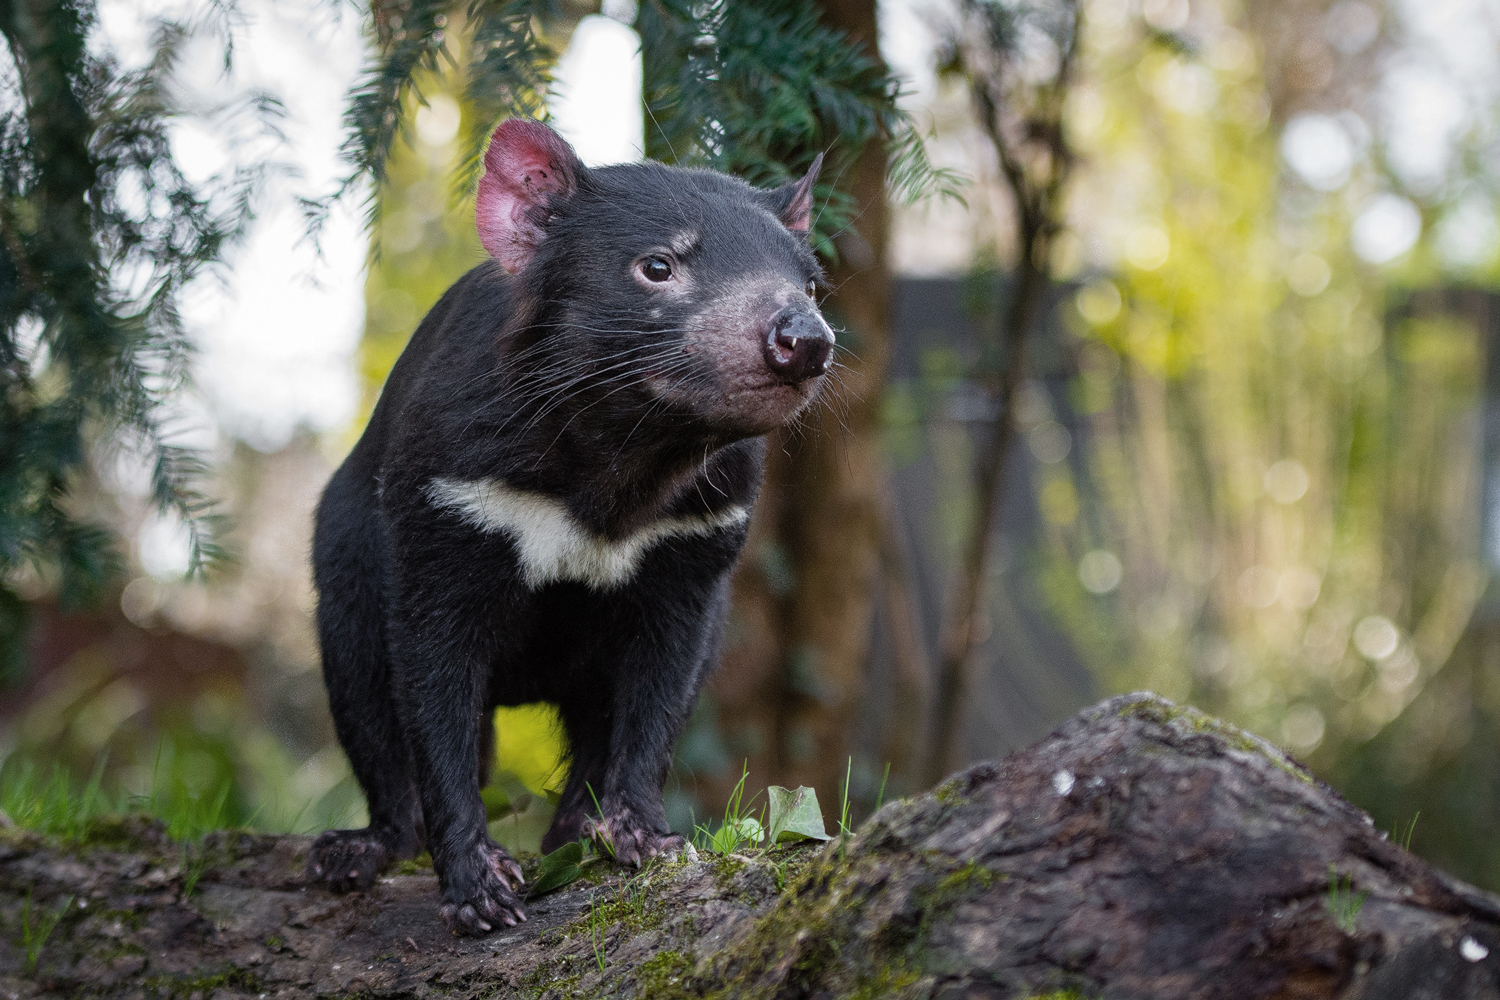 Photo of Tasmanian devil, a small black carnivorous mammal with a rounded snout, standing on a log.